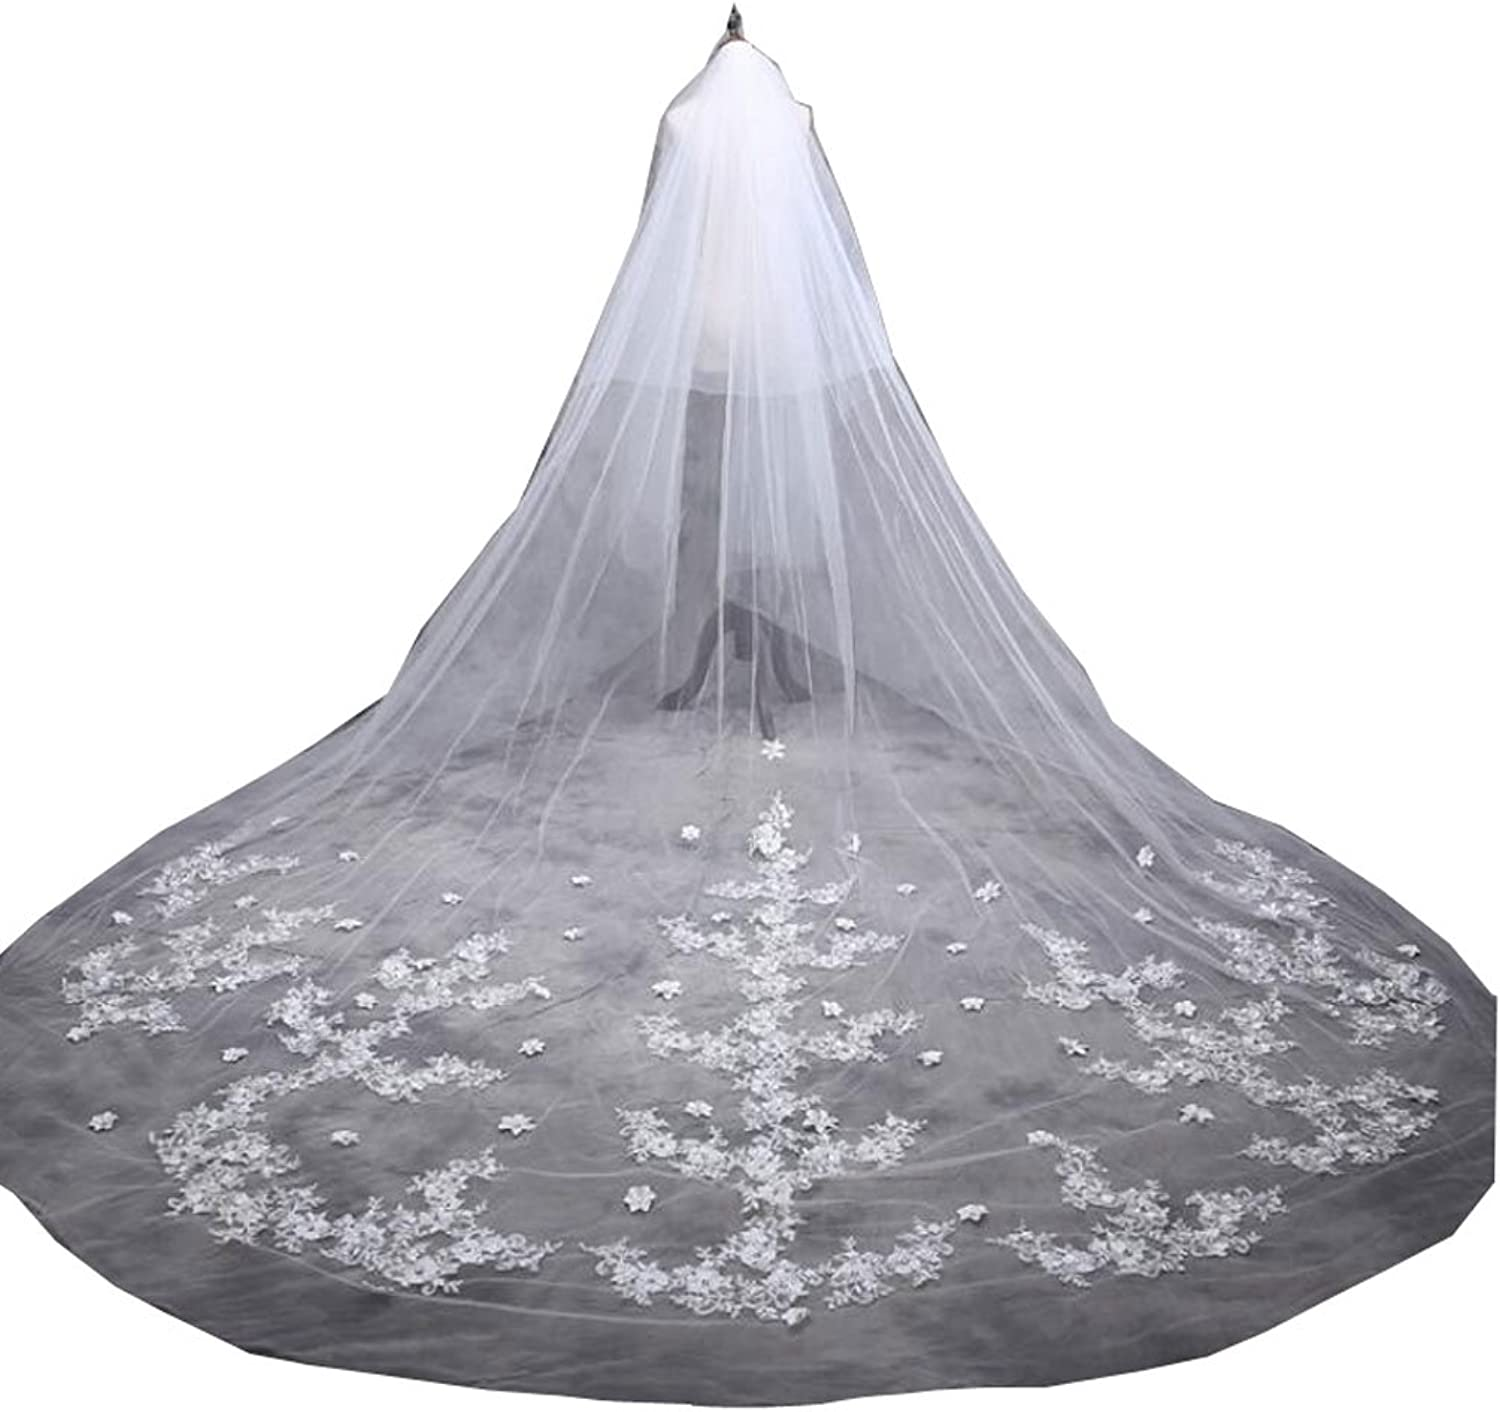 Kelaixiang 5 Meter Long 2 Tier 2 Layer White Cathedral Bridle Veils